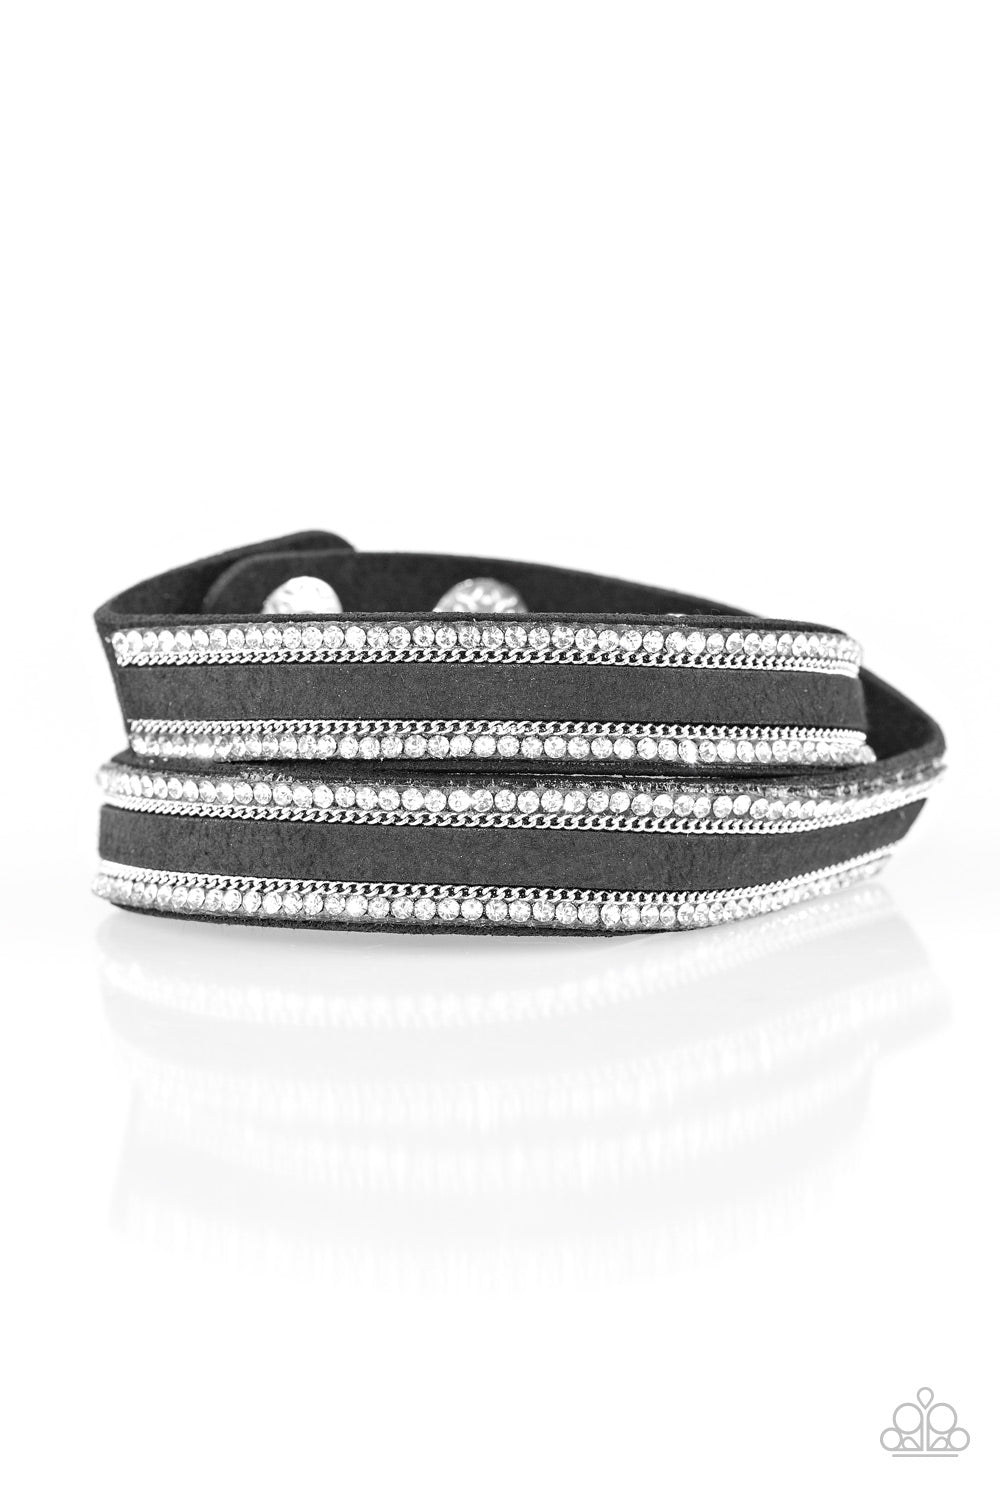 Paparazzi Accessories - Going For Glam - Black Bracelet - JMJ Jewelry Collection